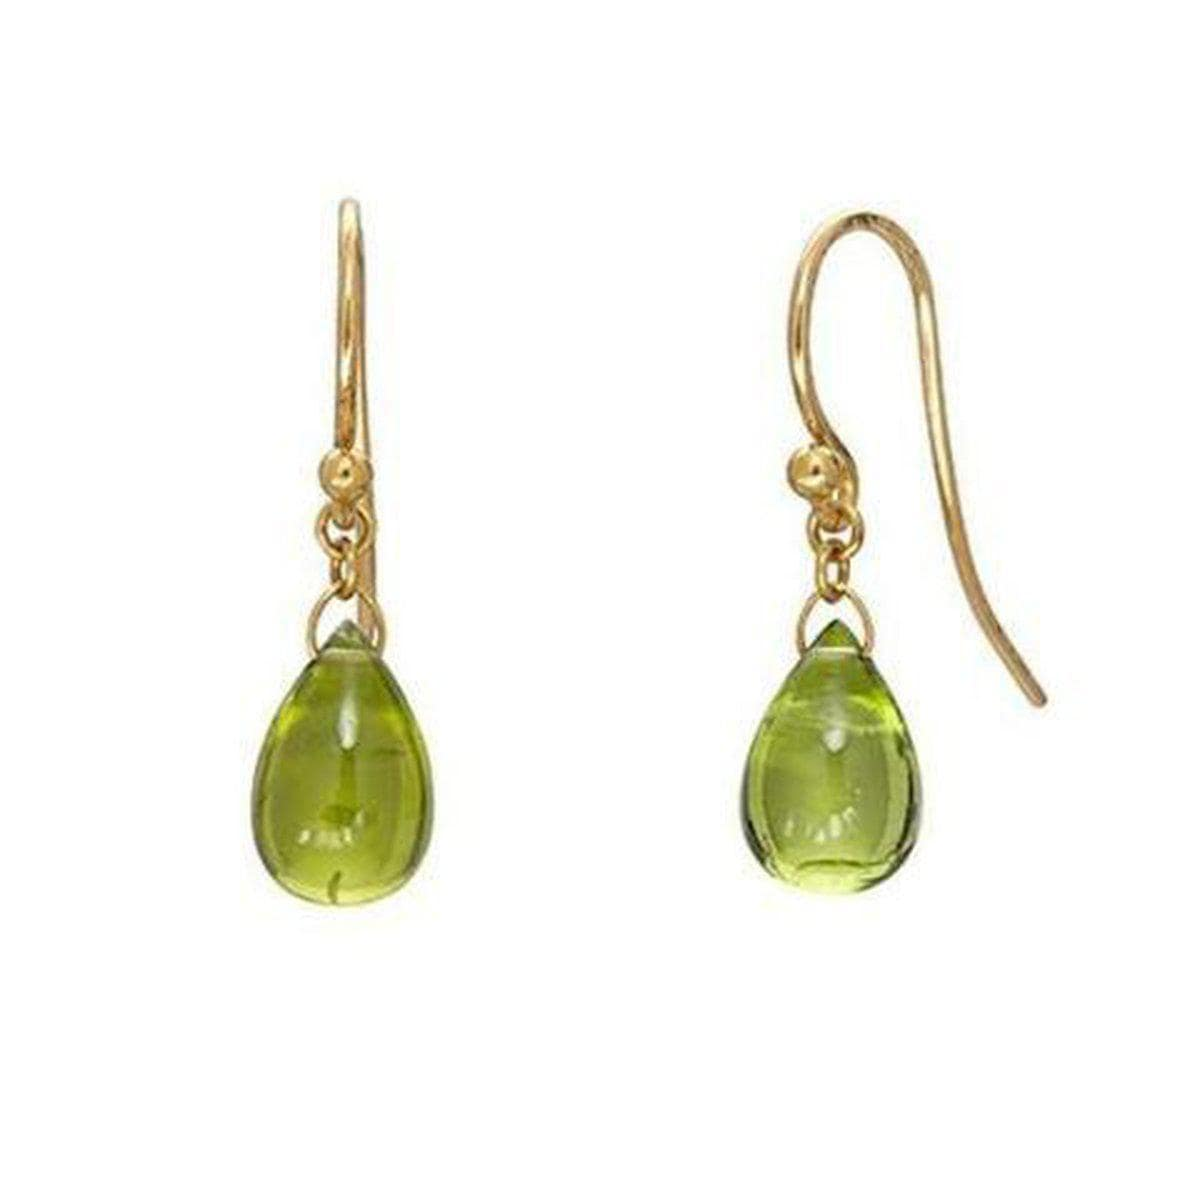 Delicate Hue 24K Gold Peridot Earrings - E-U23457-PD-GURHAN-Renee Taylor Gallery